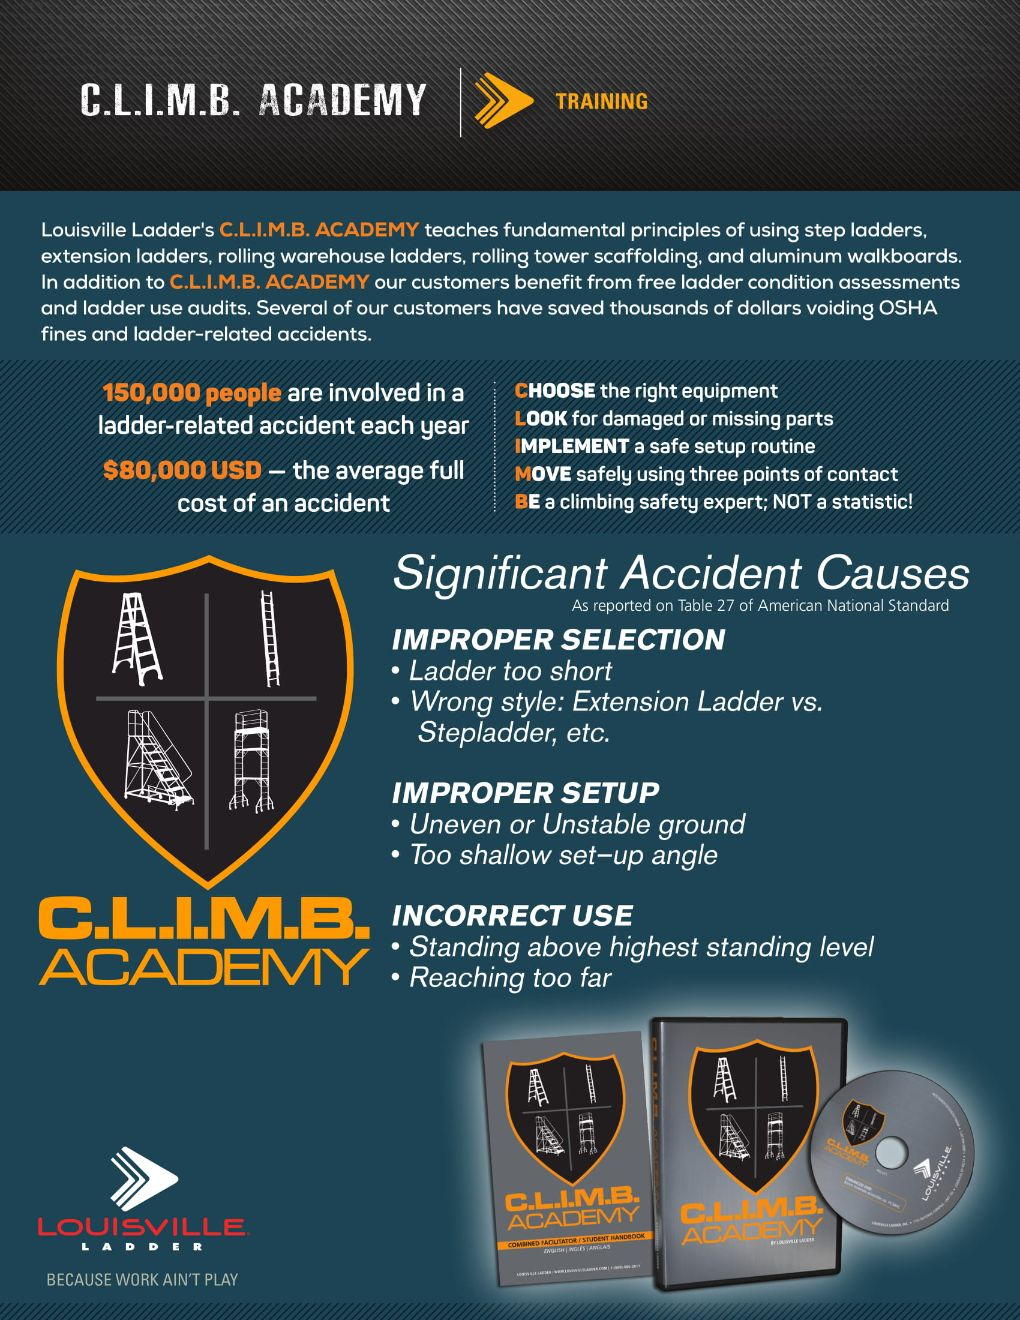 C.L.I.M.B. Academy Flyer Marketing Material Image